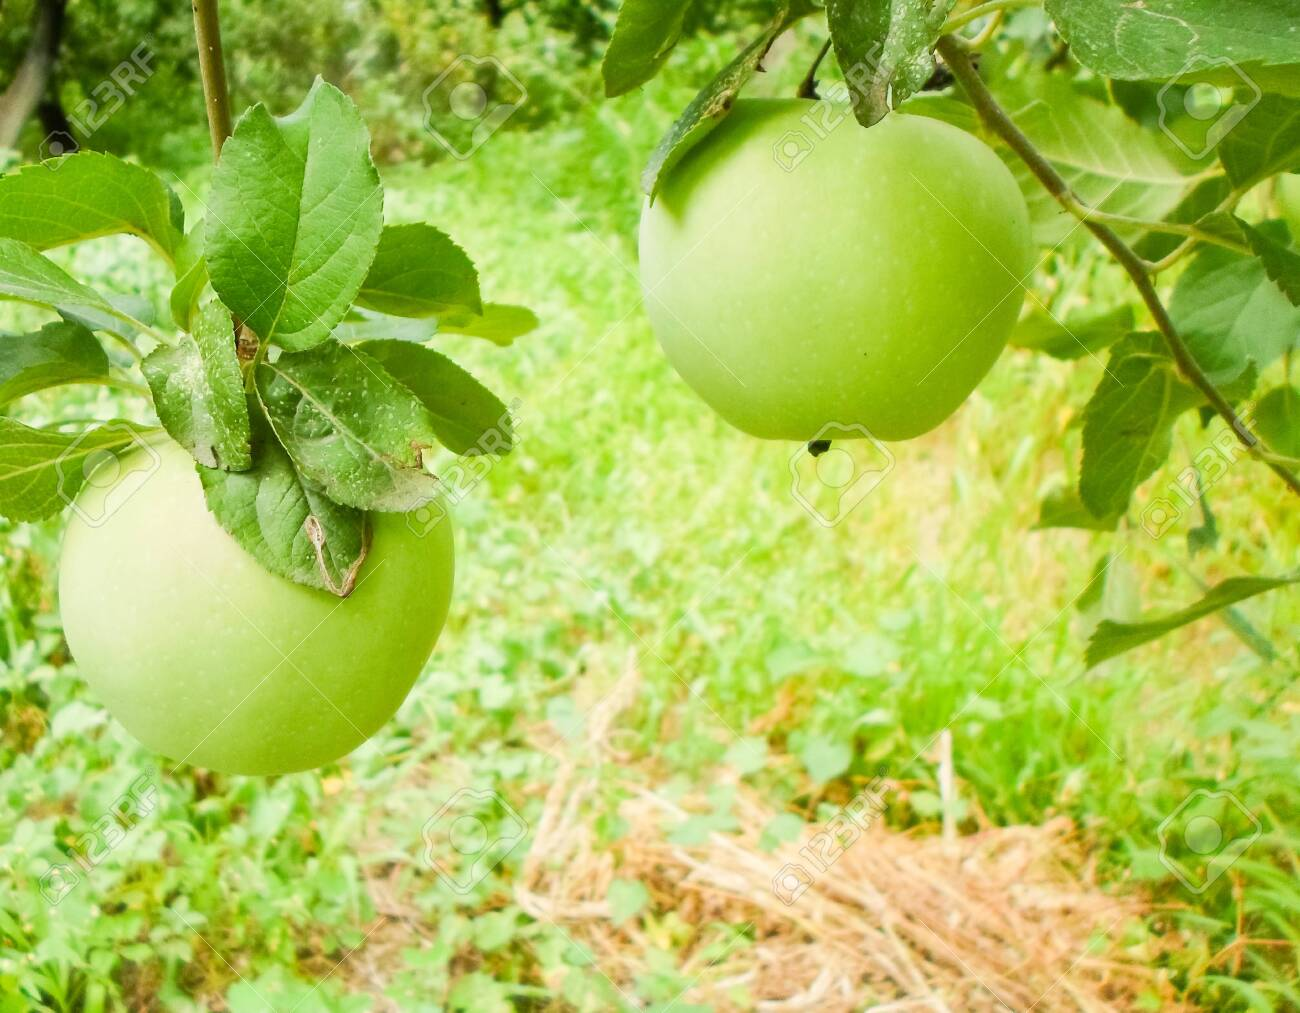 Large green apples on apple tree branches in the garden on a summer day. - 148351180